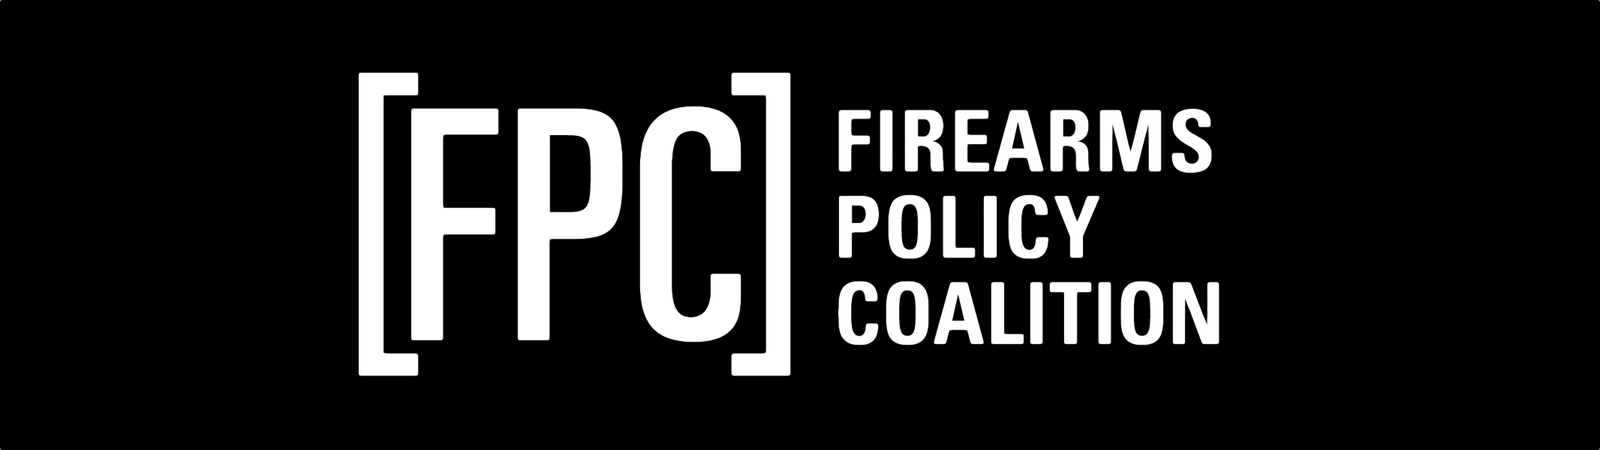 Firearms Policy Coalition: WA Support